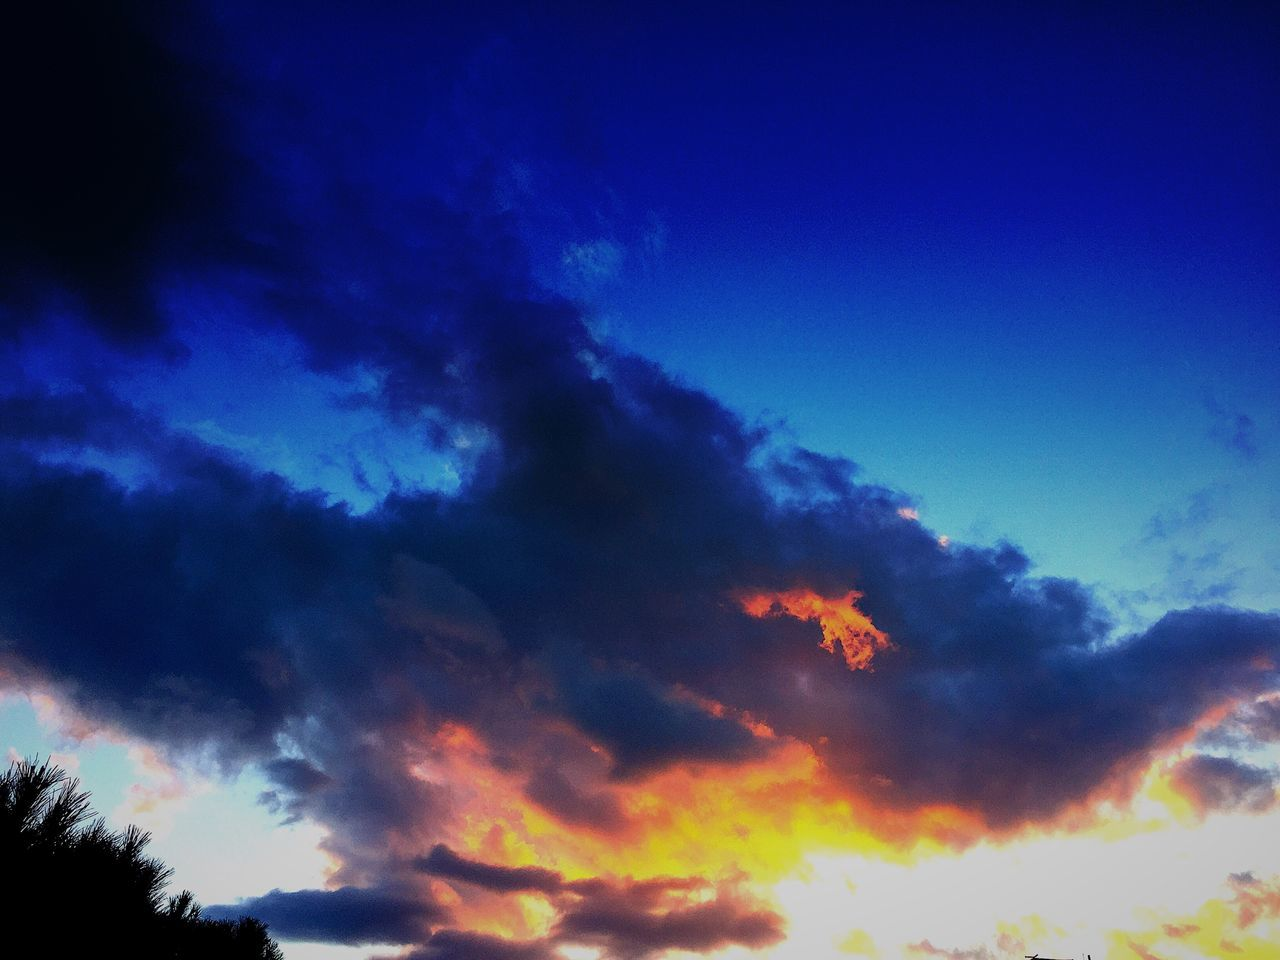 sky, low angle view, beauty in nature, blue, cloud - sky, nature, scenics, sunset, tranquil scene, silhouette, tranquility, no people, sky only, outdoors, day